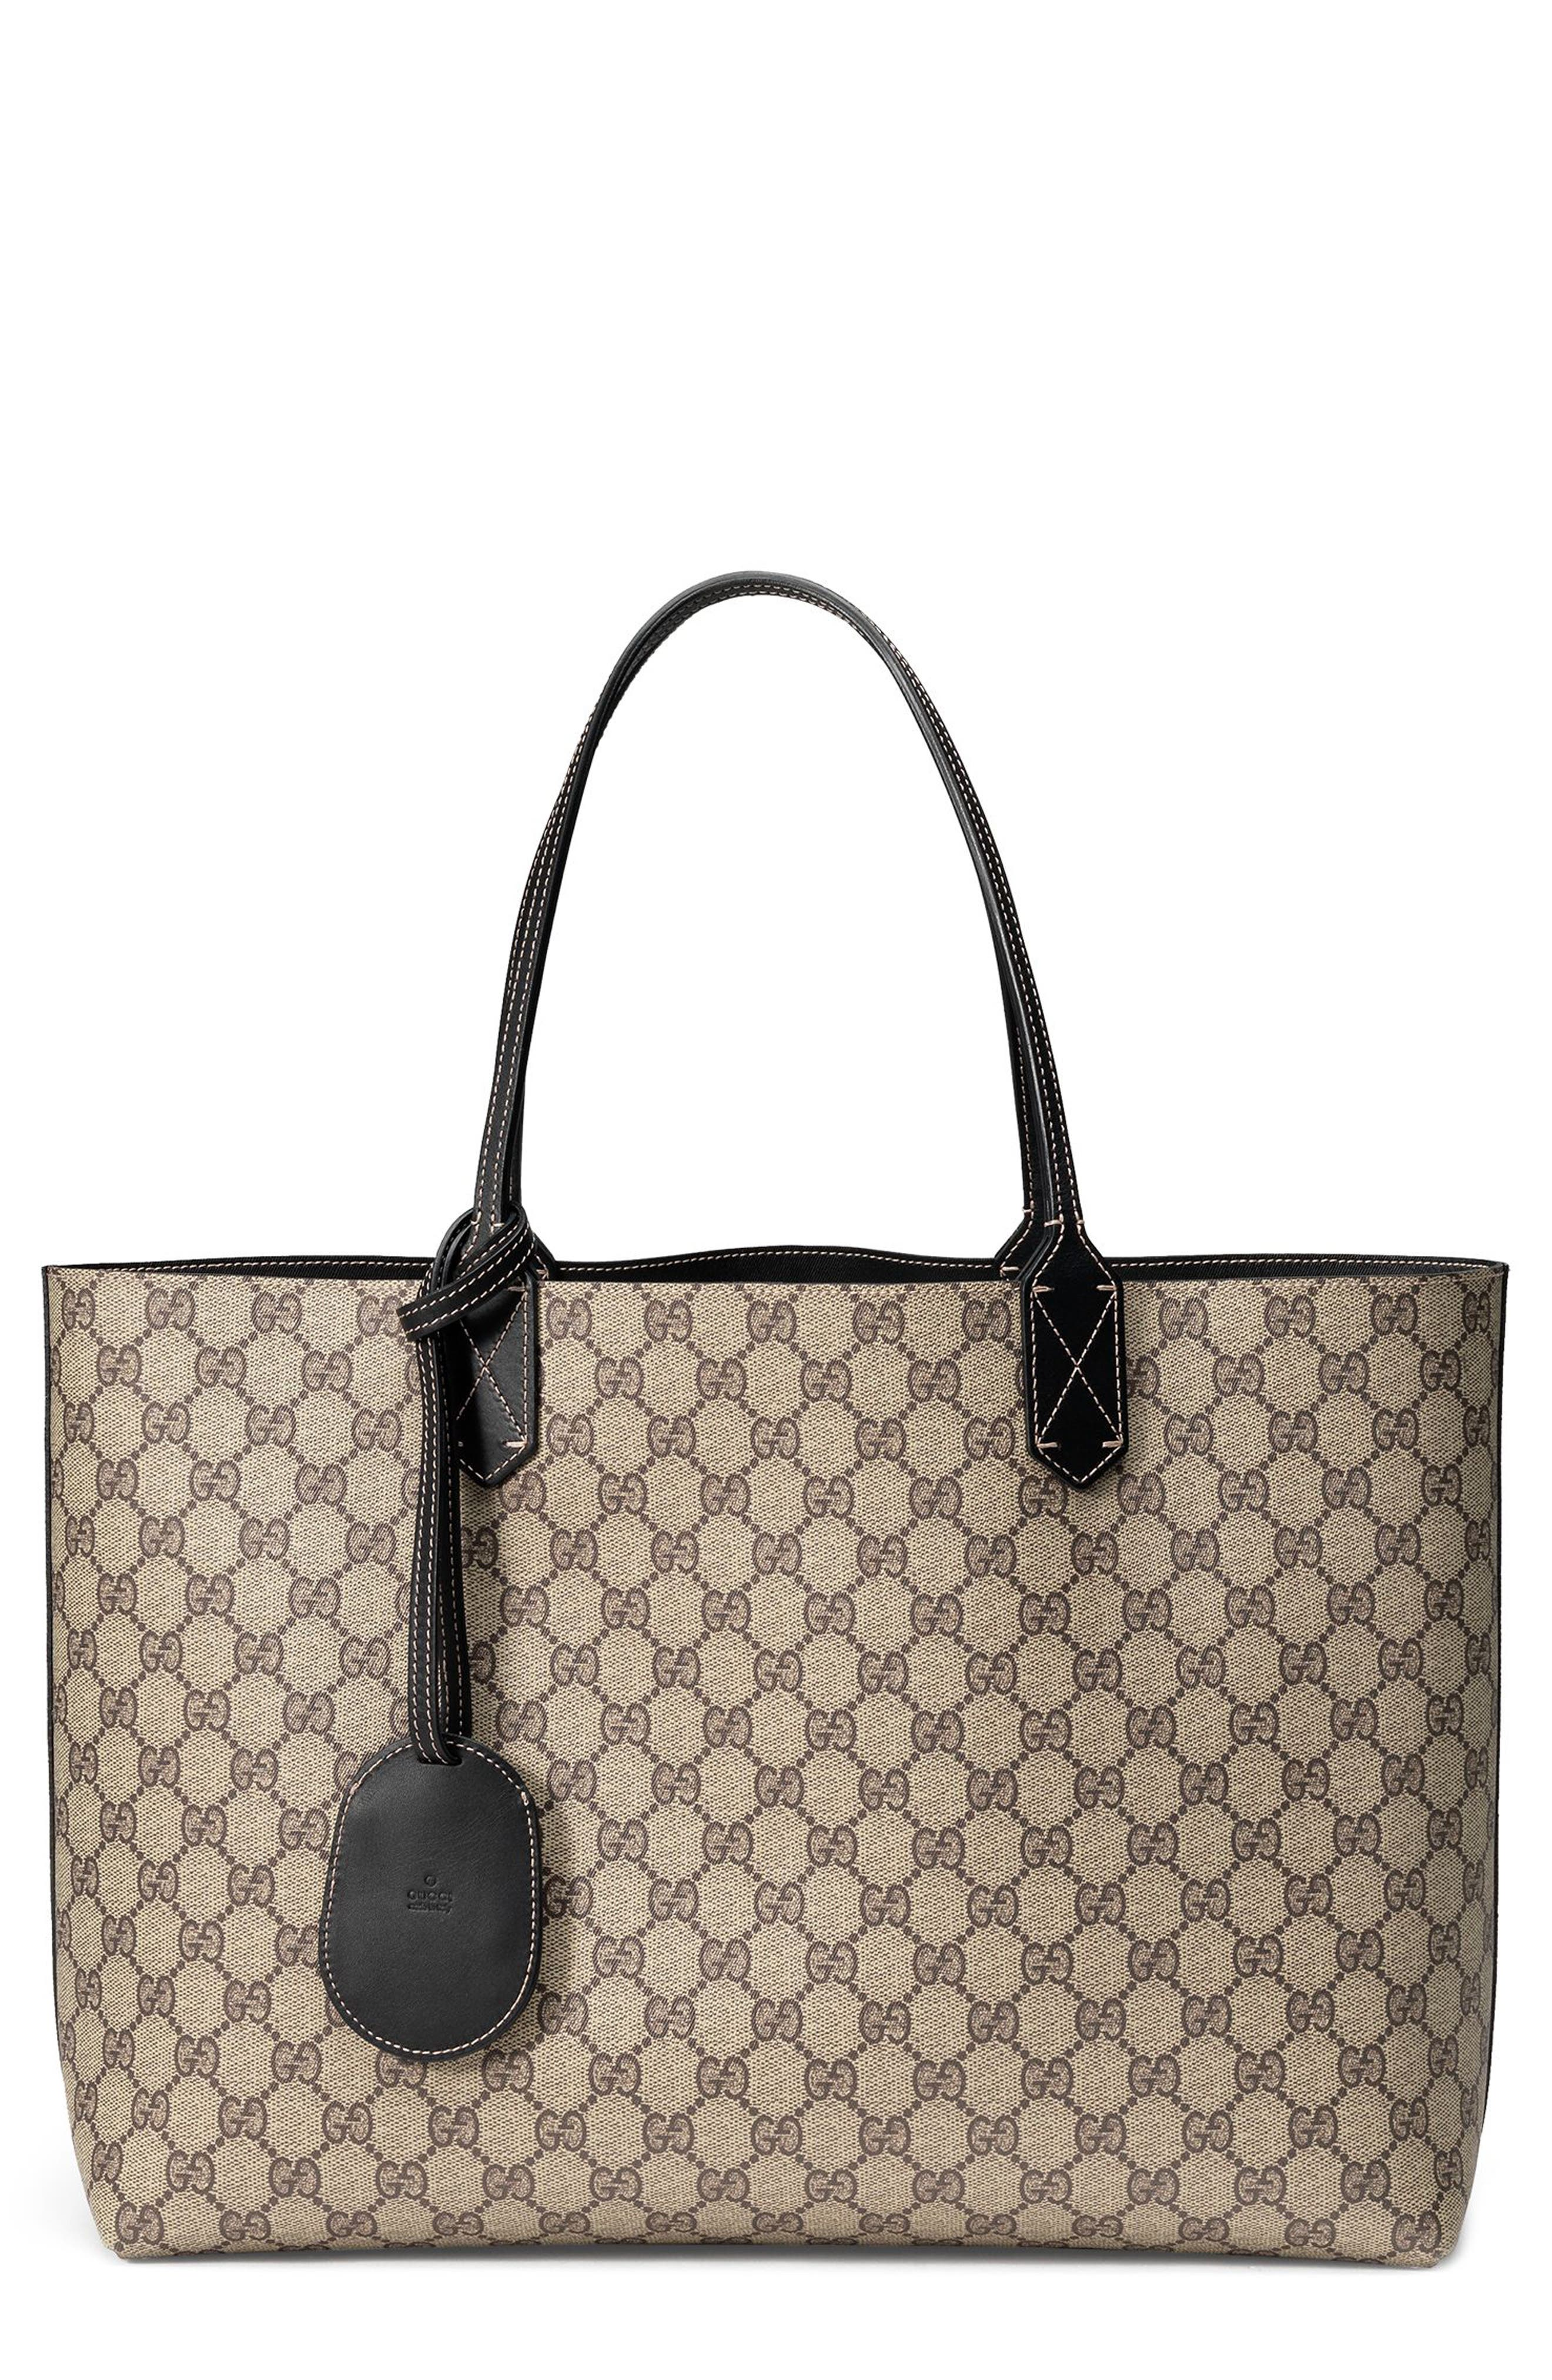 gucci bags at nordstrom. gucci medium turnaround reversible leather tote bags at nordstrom a